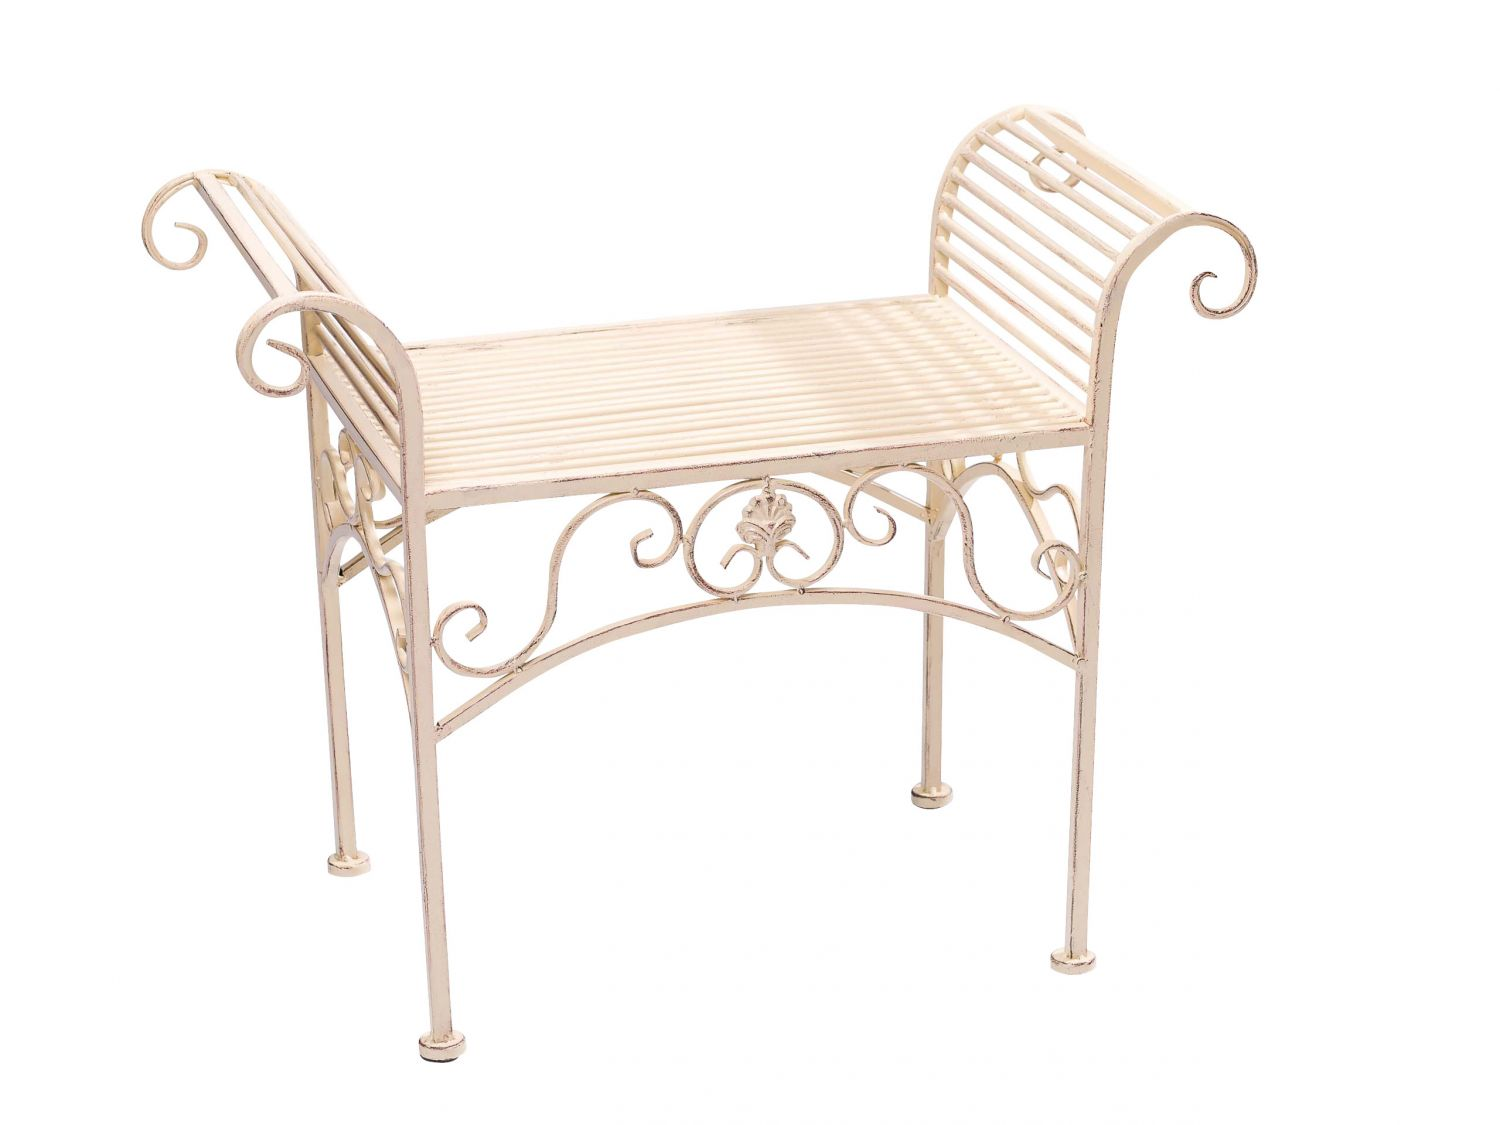 gartenbank eisen metall antik stil garten bank gartenm bel creme weiss 70cm ebay. Black Bedroom Furniture Sets. Home Design Ideas